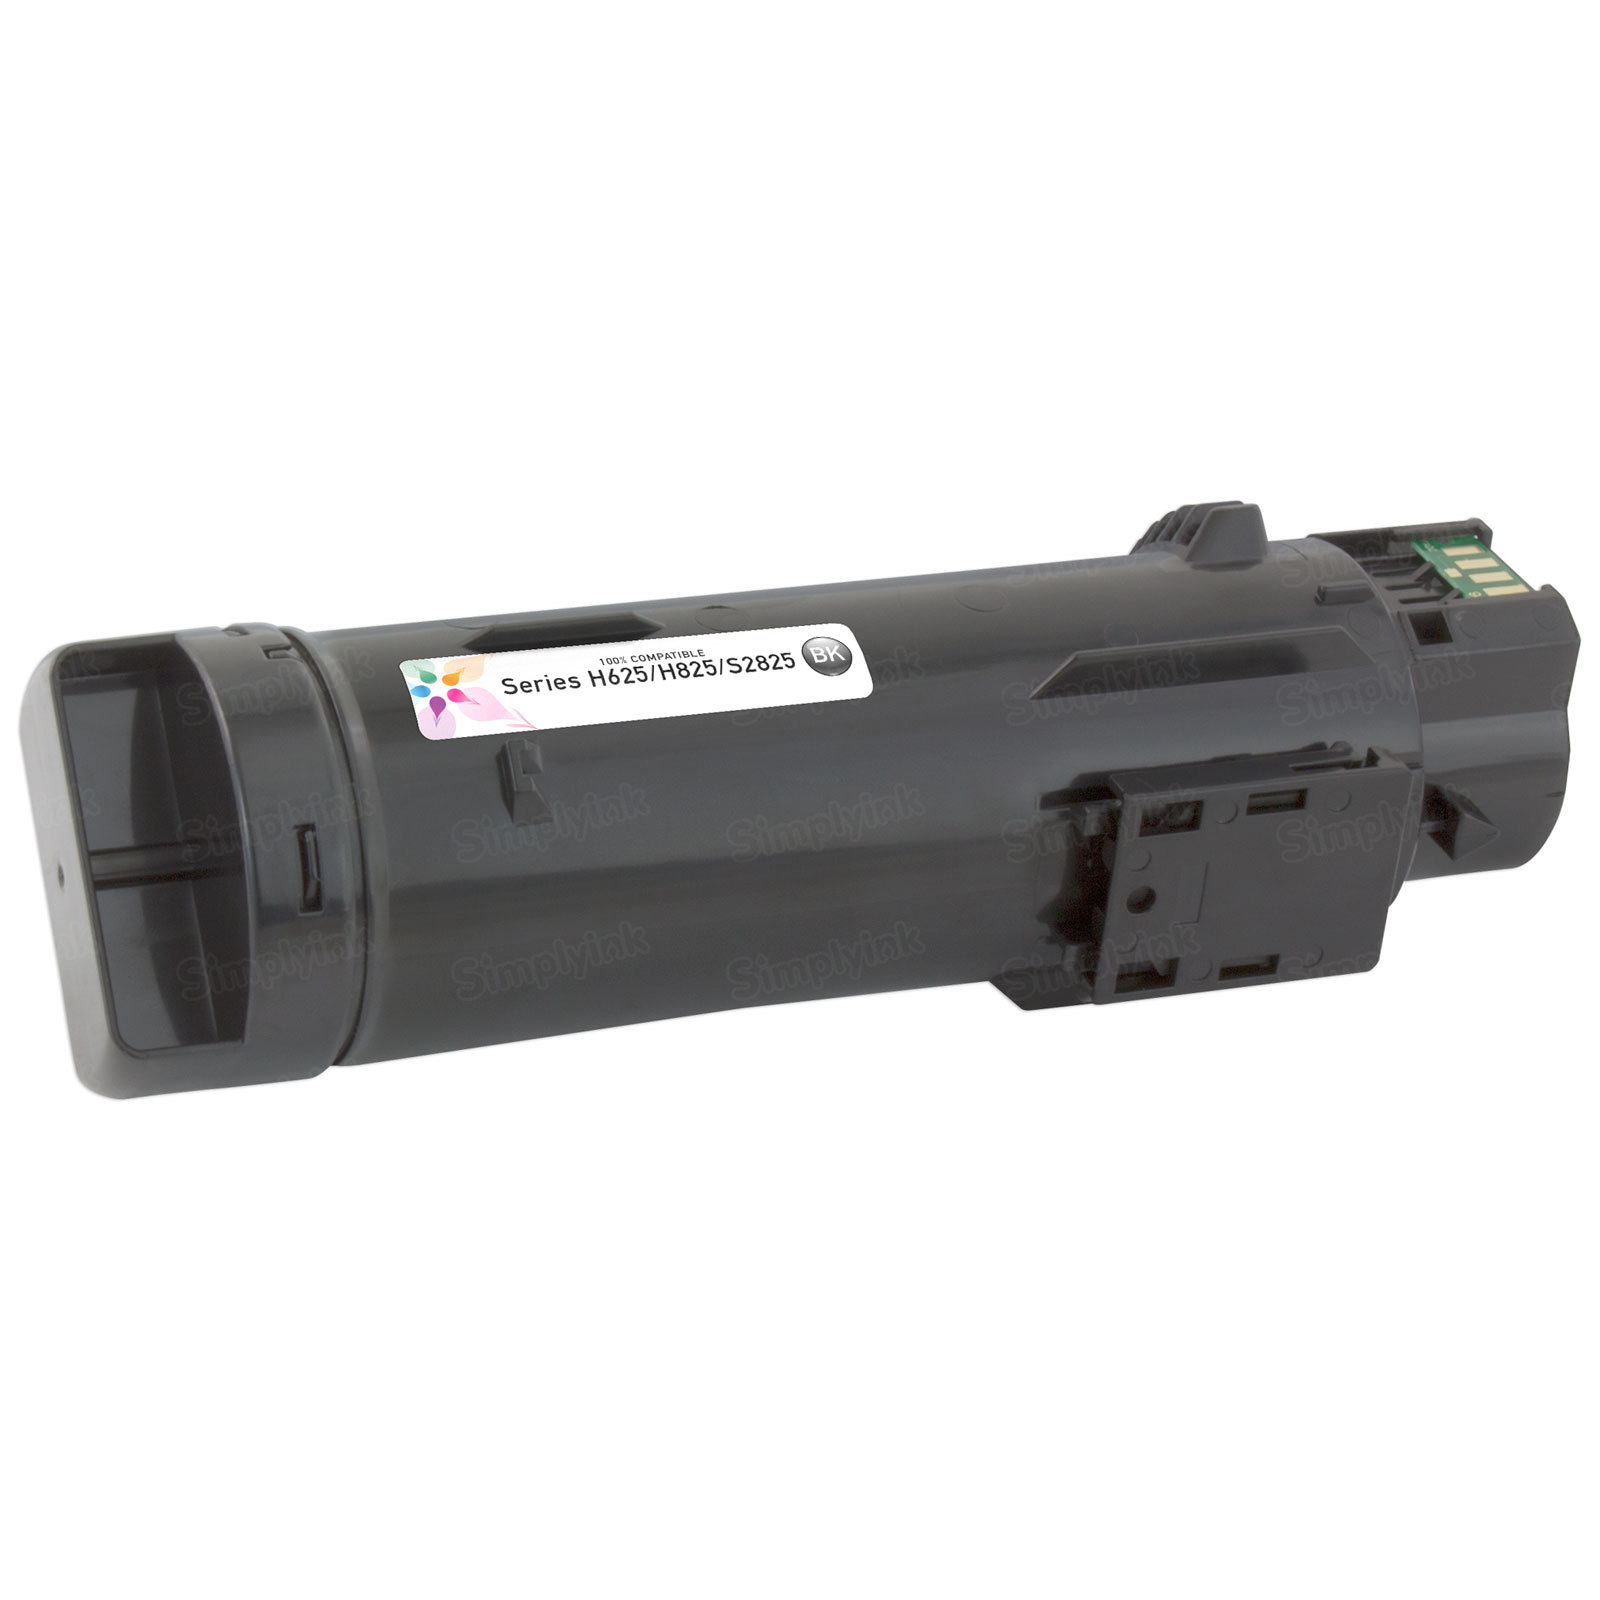 Comp. Black N7DWF Toner for Dell H625/H825